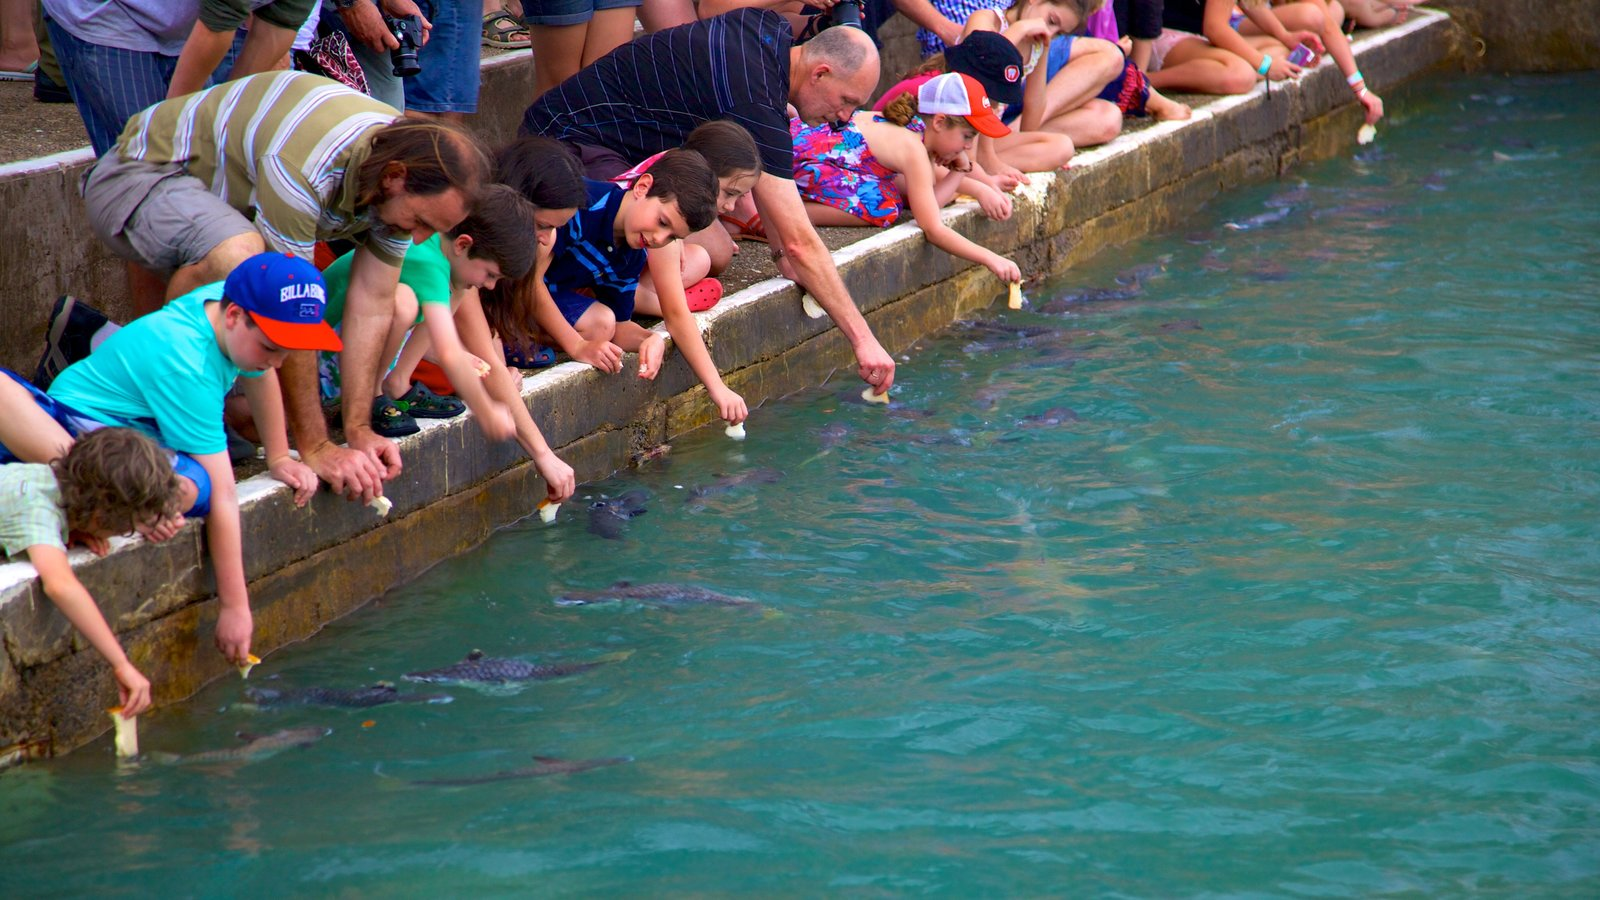 Aquascene which includes general coastal views and marine life as well as children